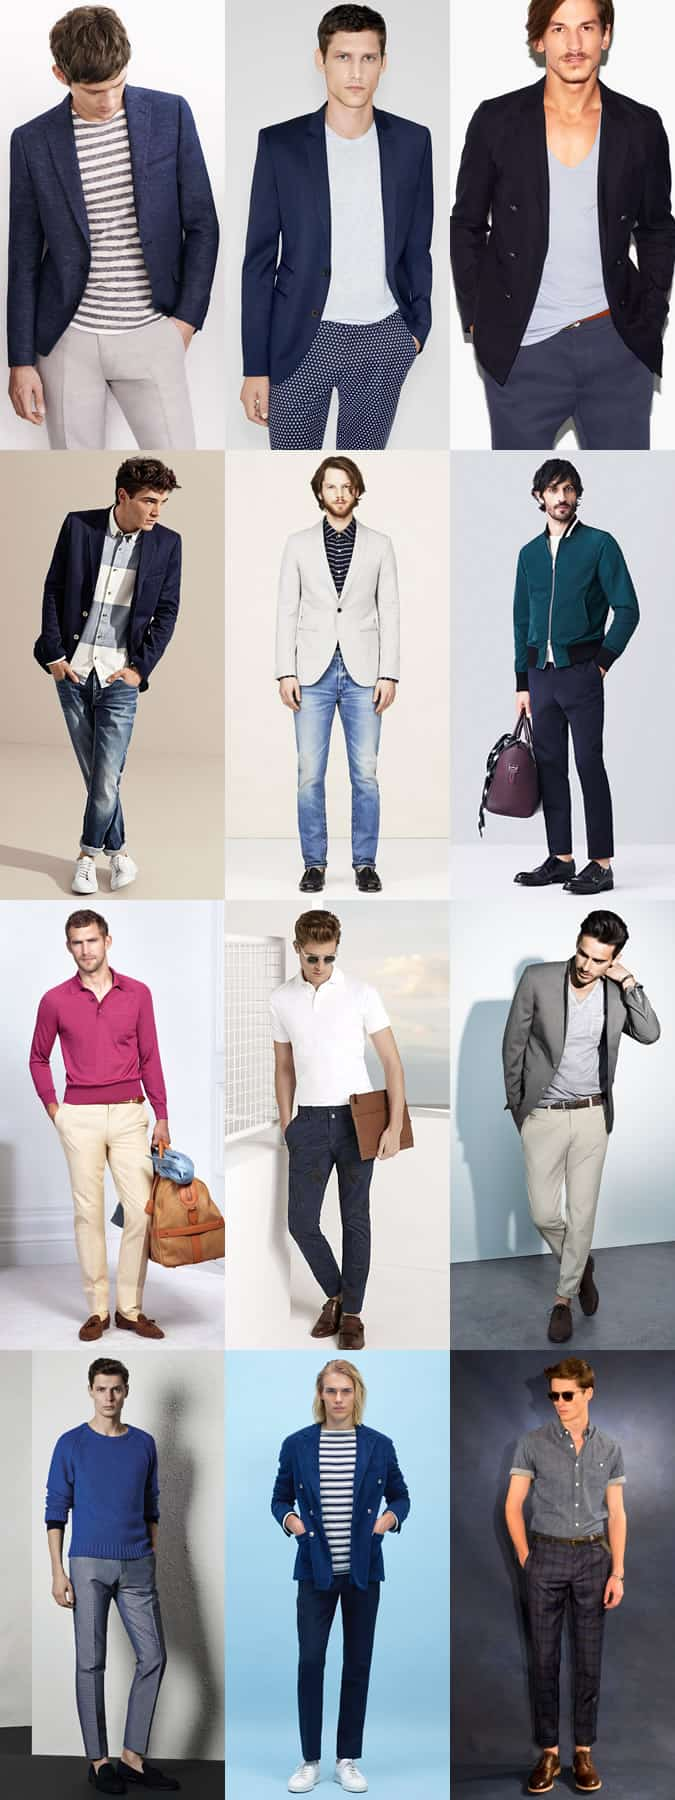 Men's Dress Down Friday Outfit Examples - Using Separates